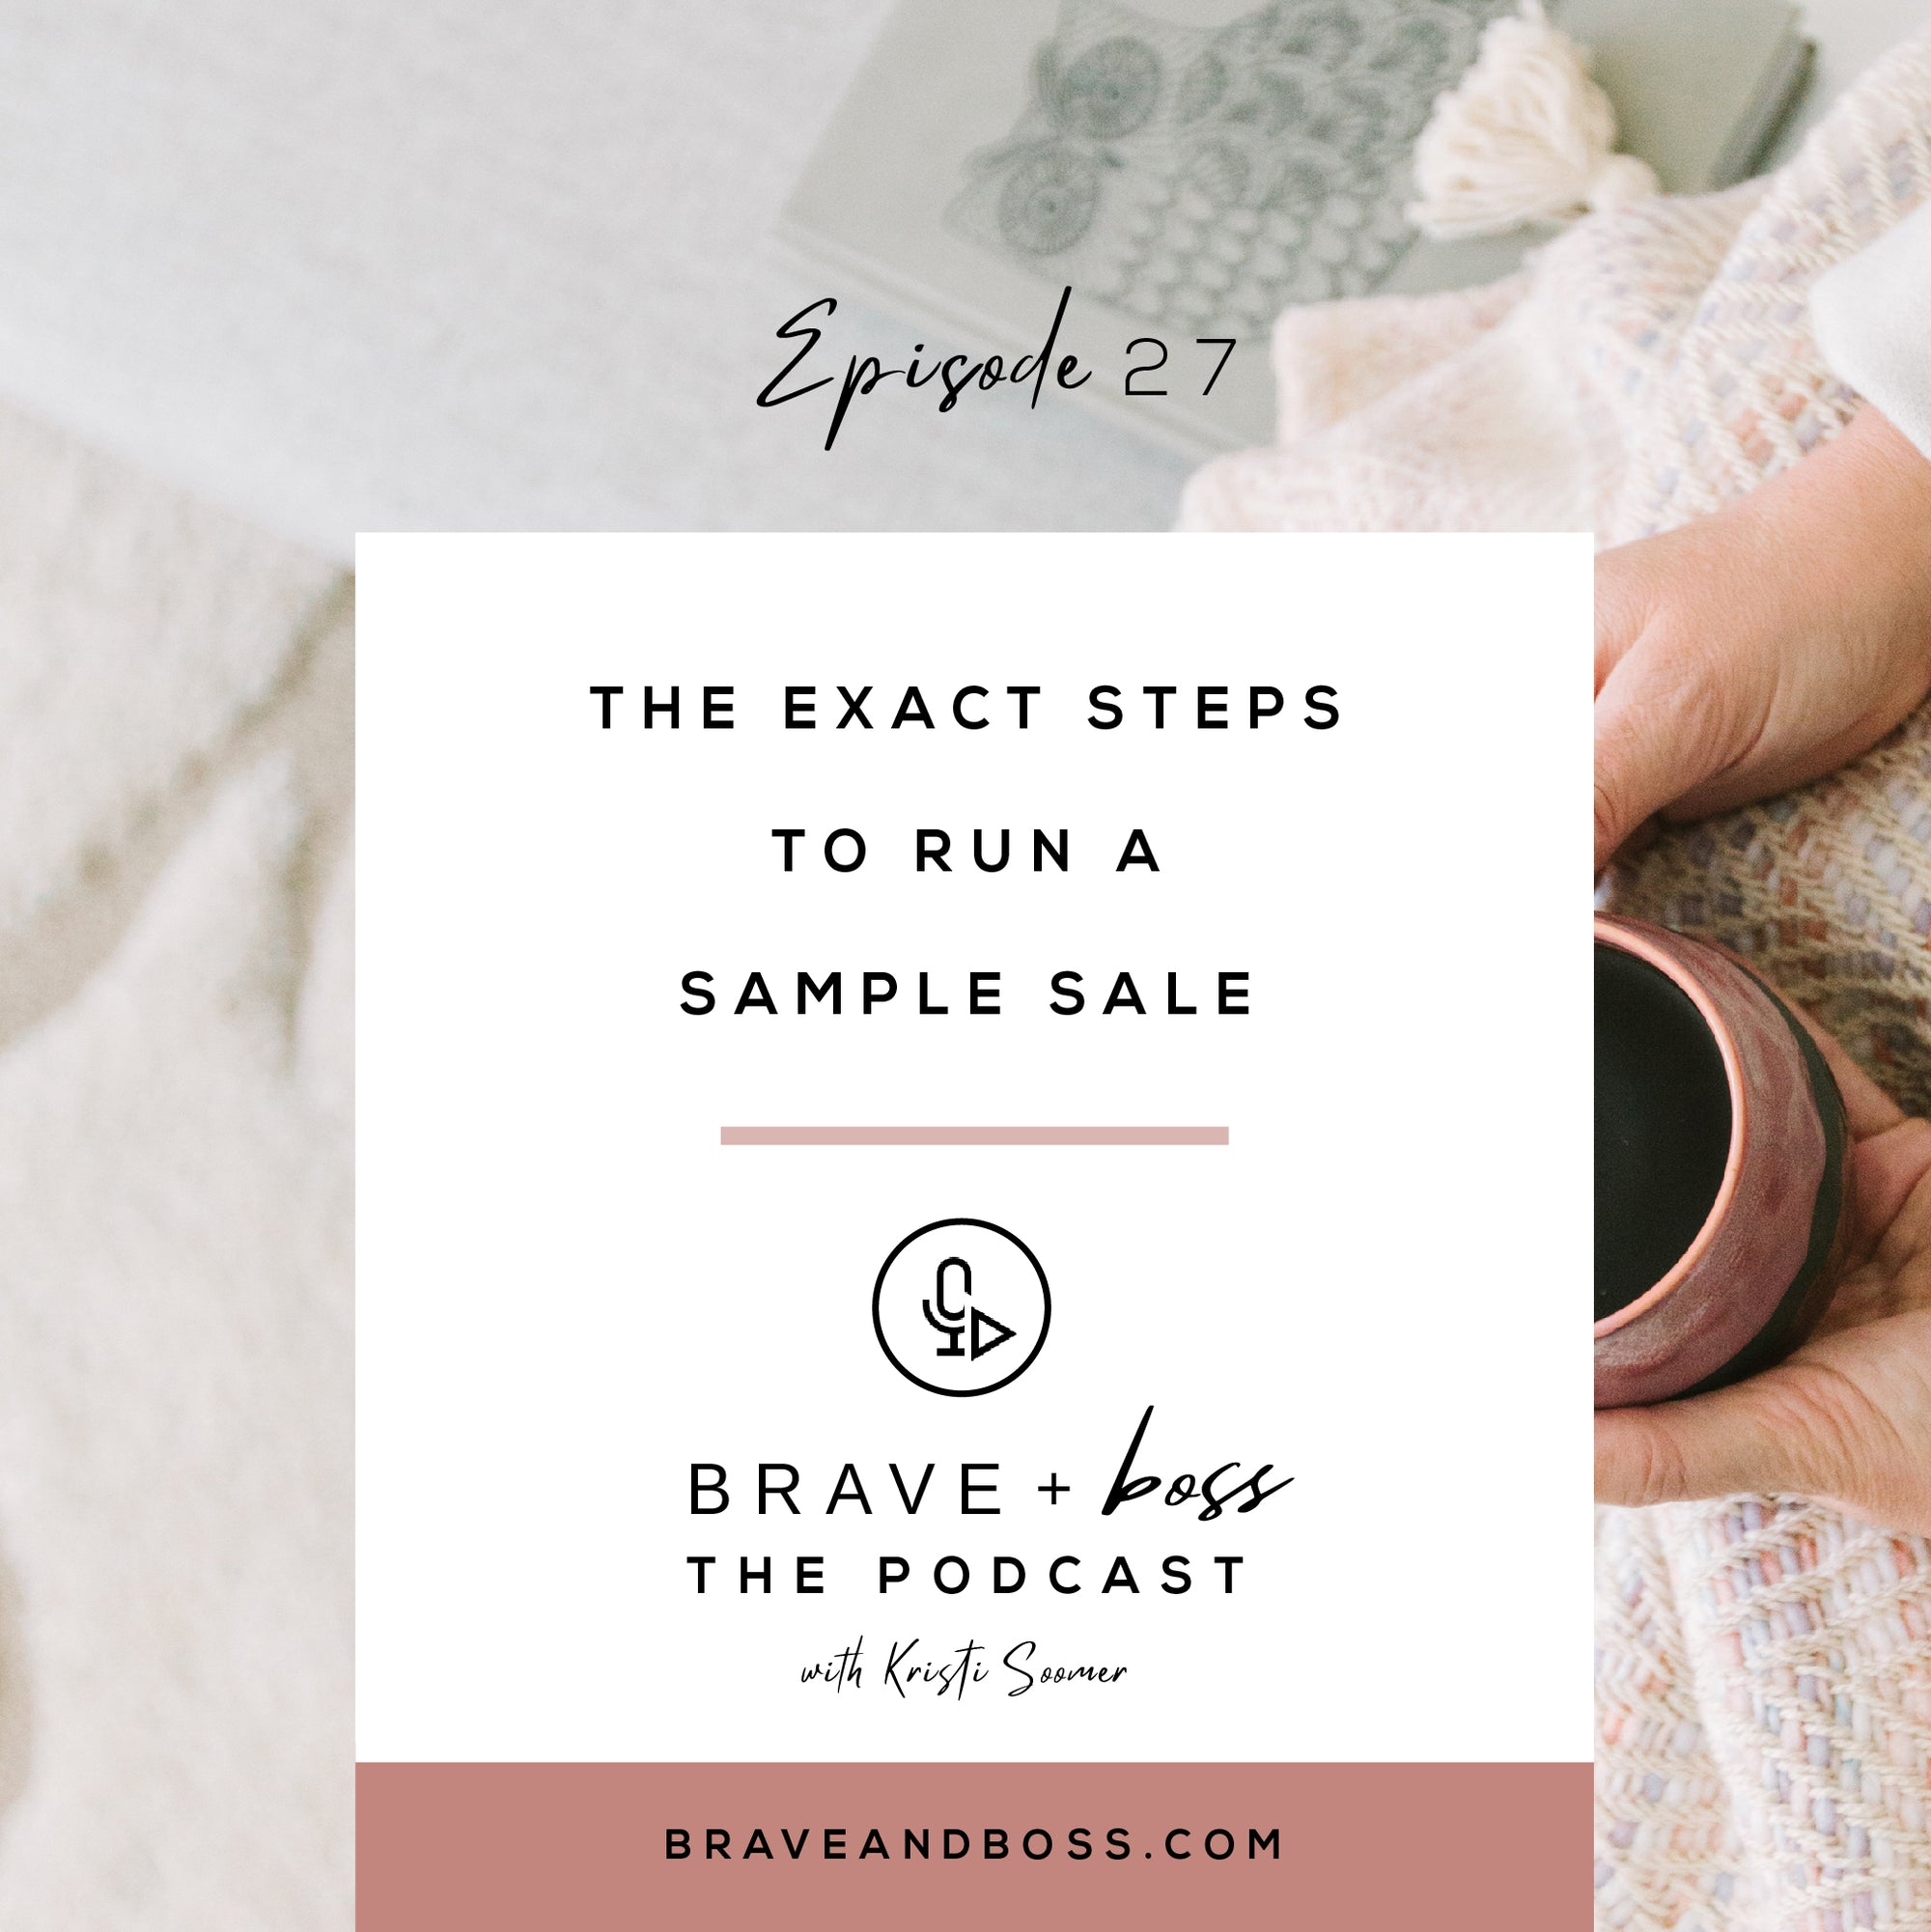 The Exact Steps to Run a Sample Sale